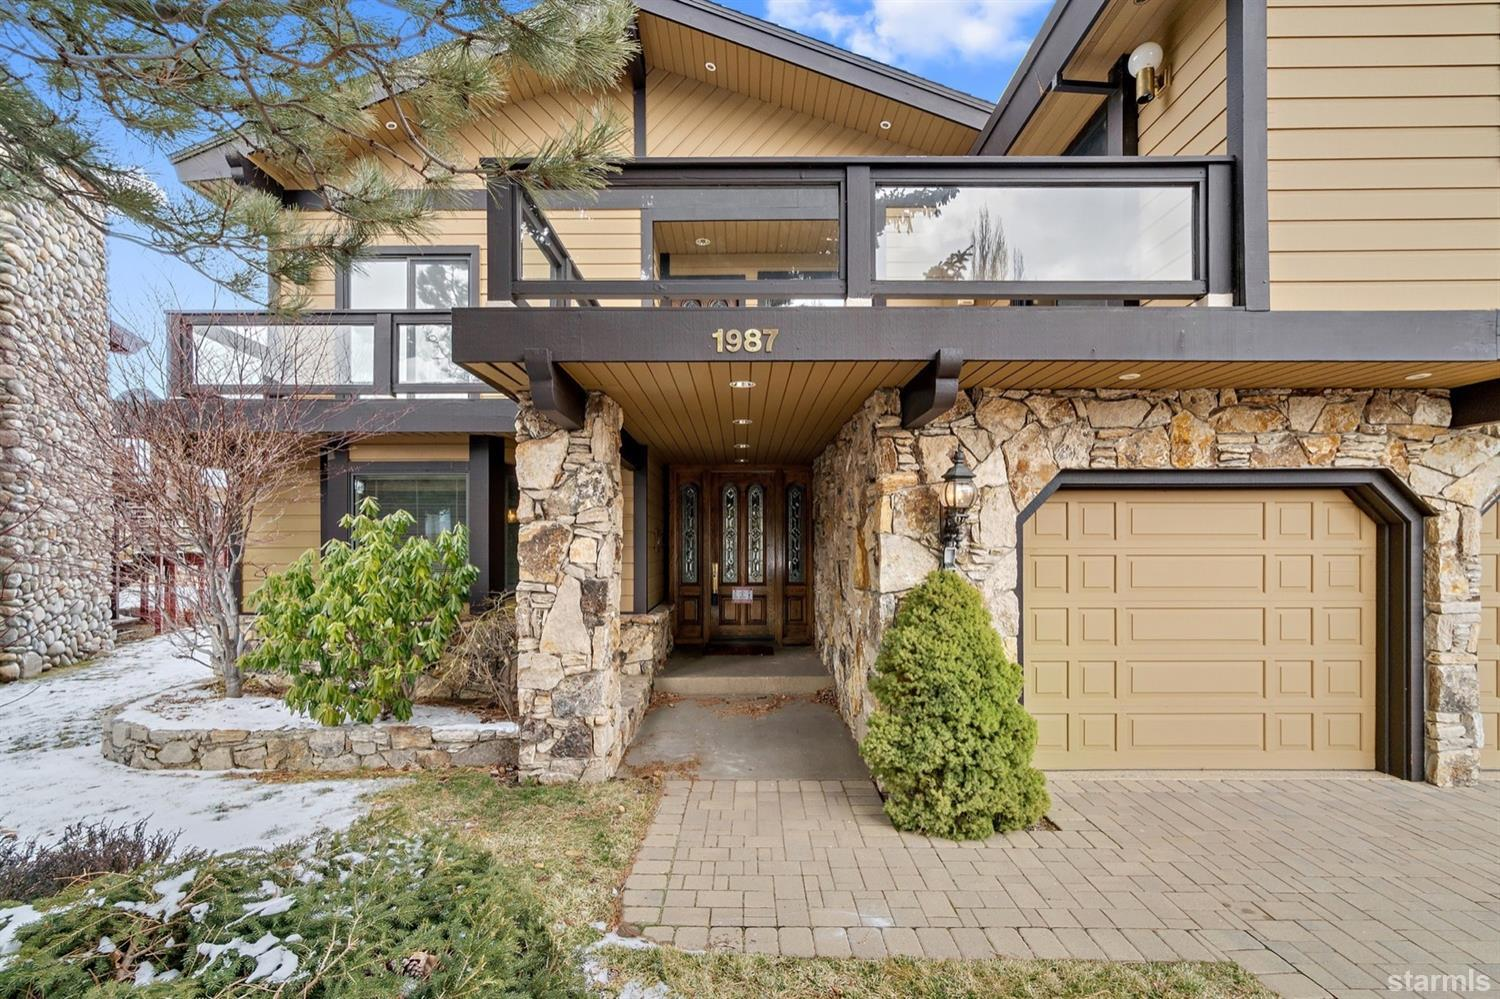 Image for 1987 Aloha Drive, South Lake Tahoe, CA 96150